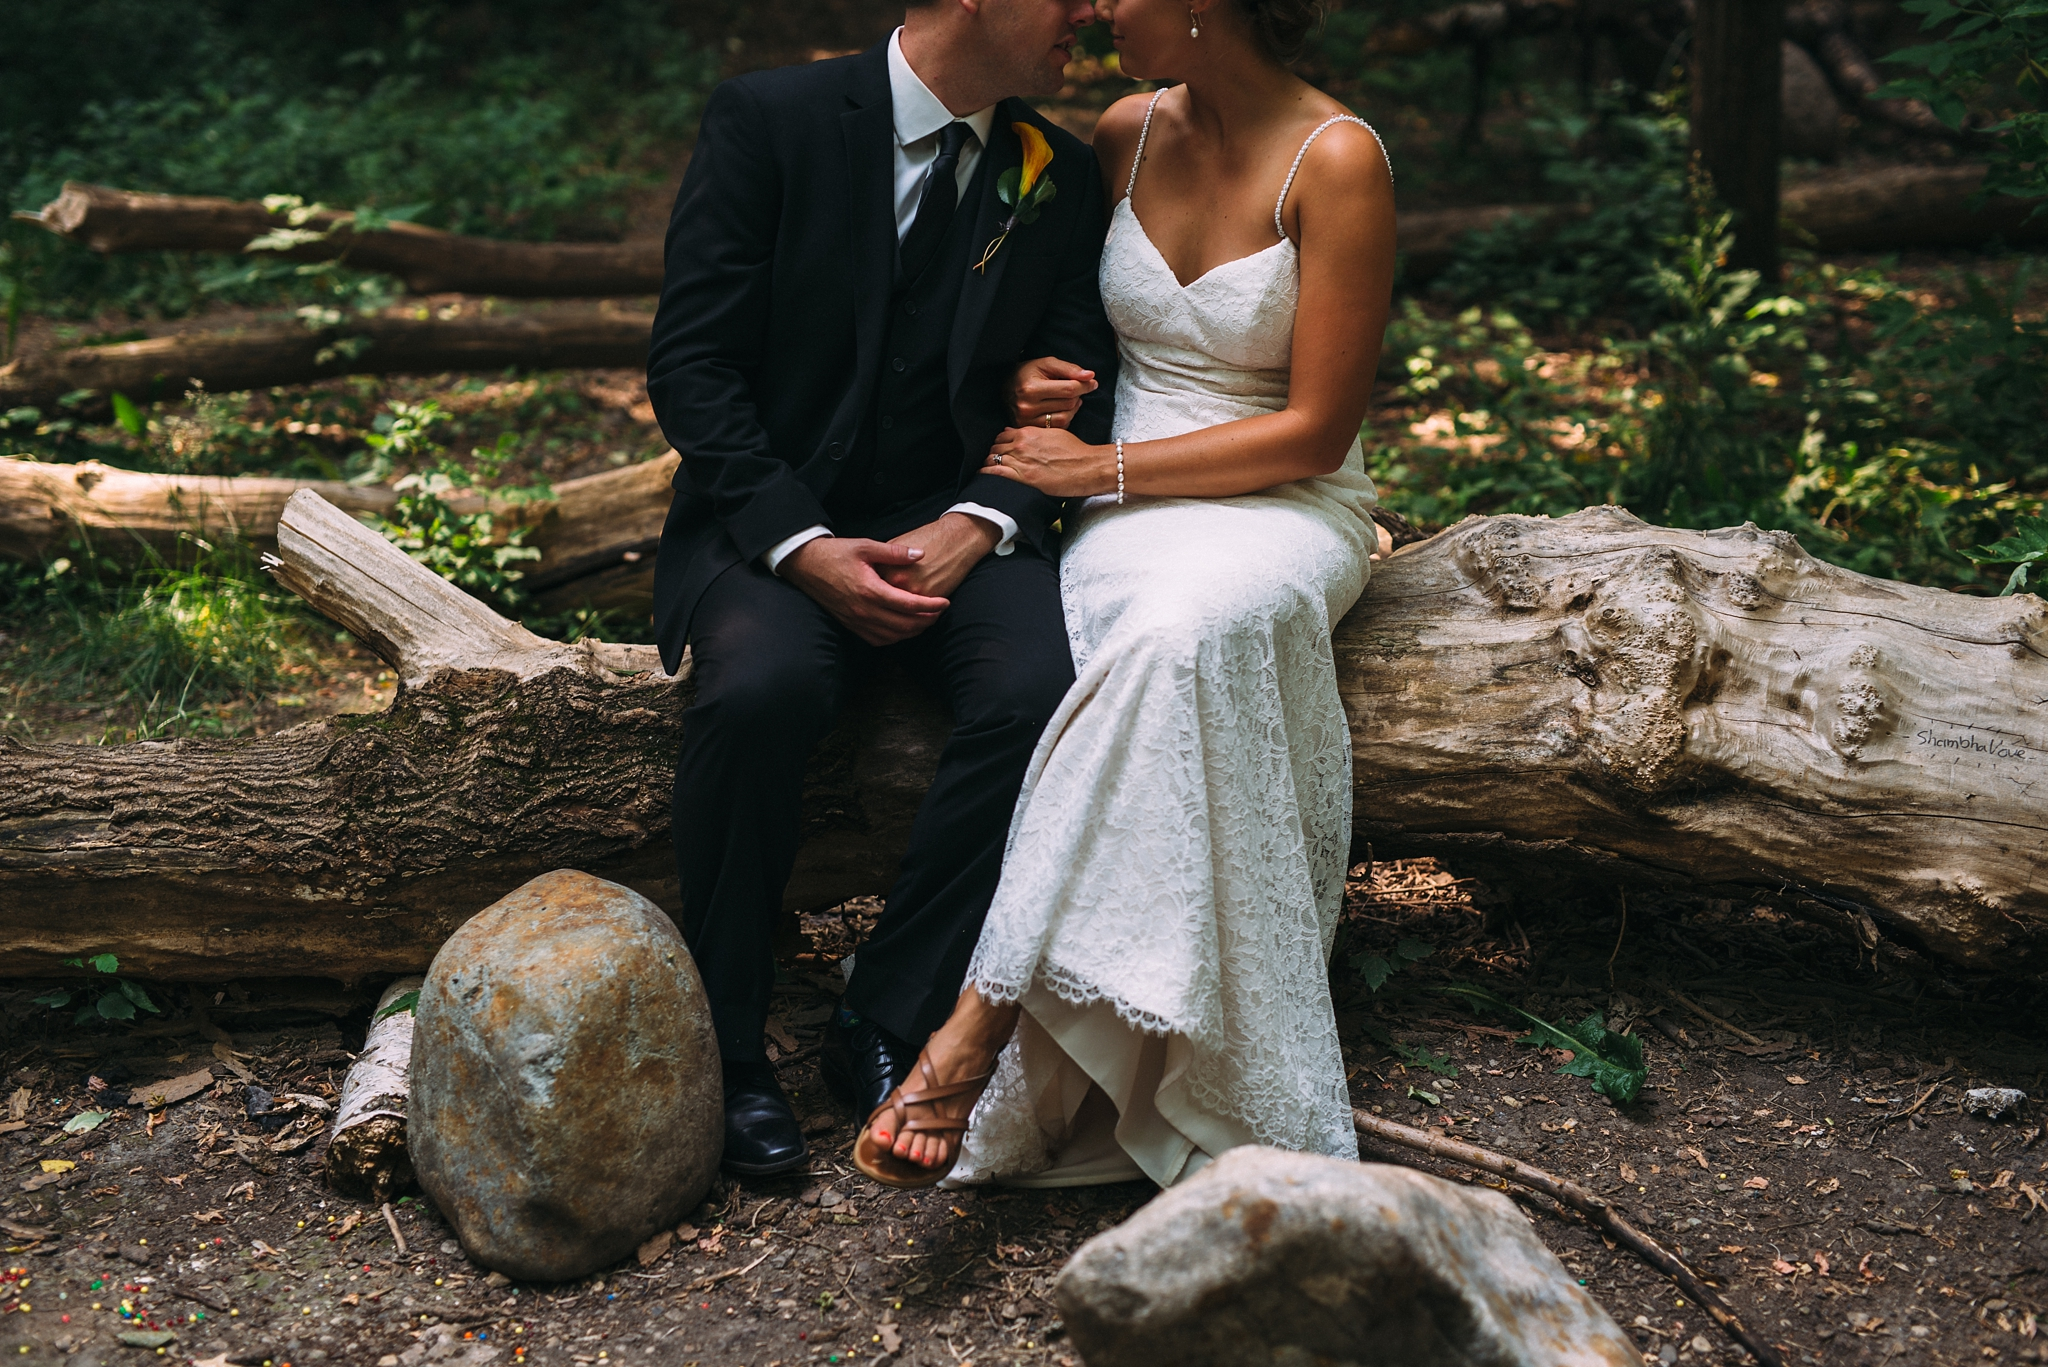 kaihla_tonai_intimate_wedding_elopement_photographer_1975